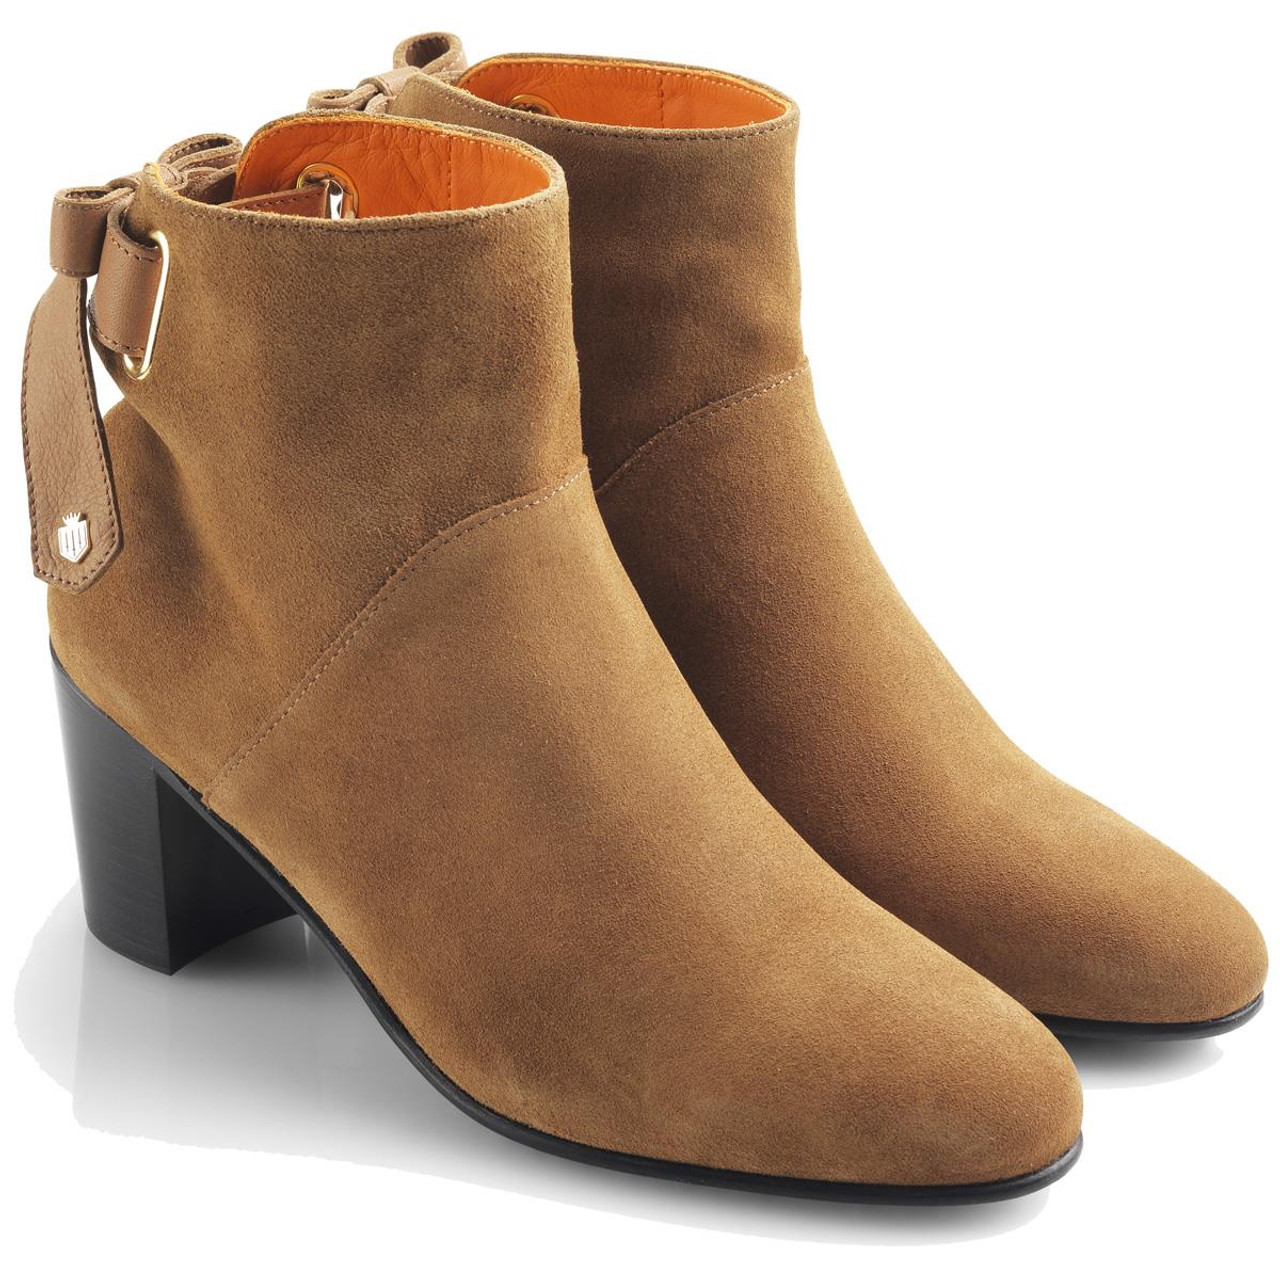 Tan Fairfax & Favor Womens Blair Ankle Boots